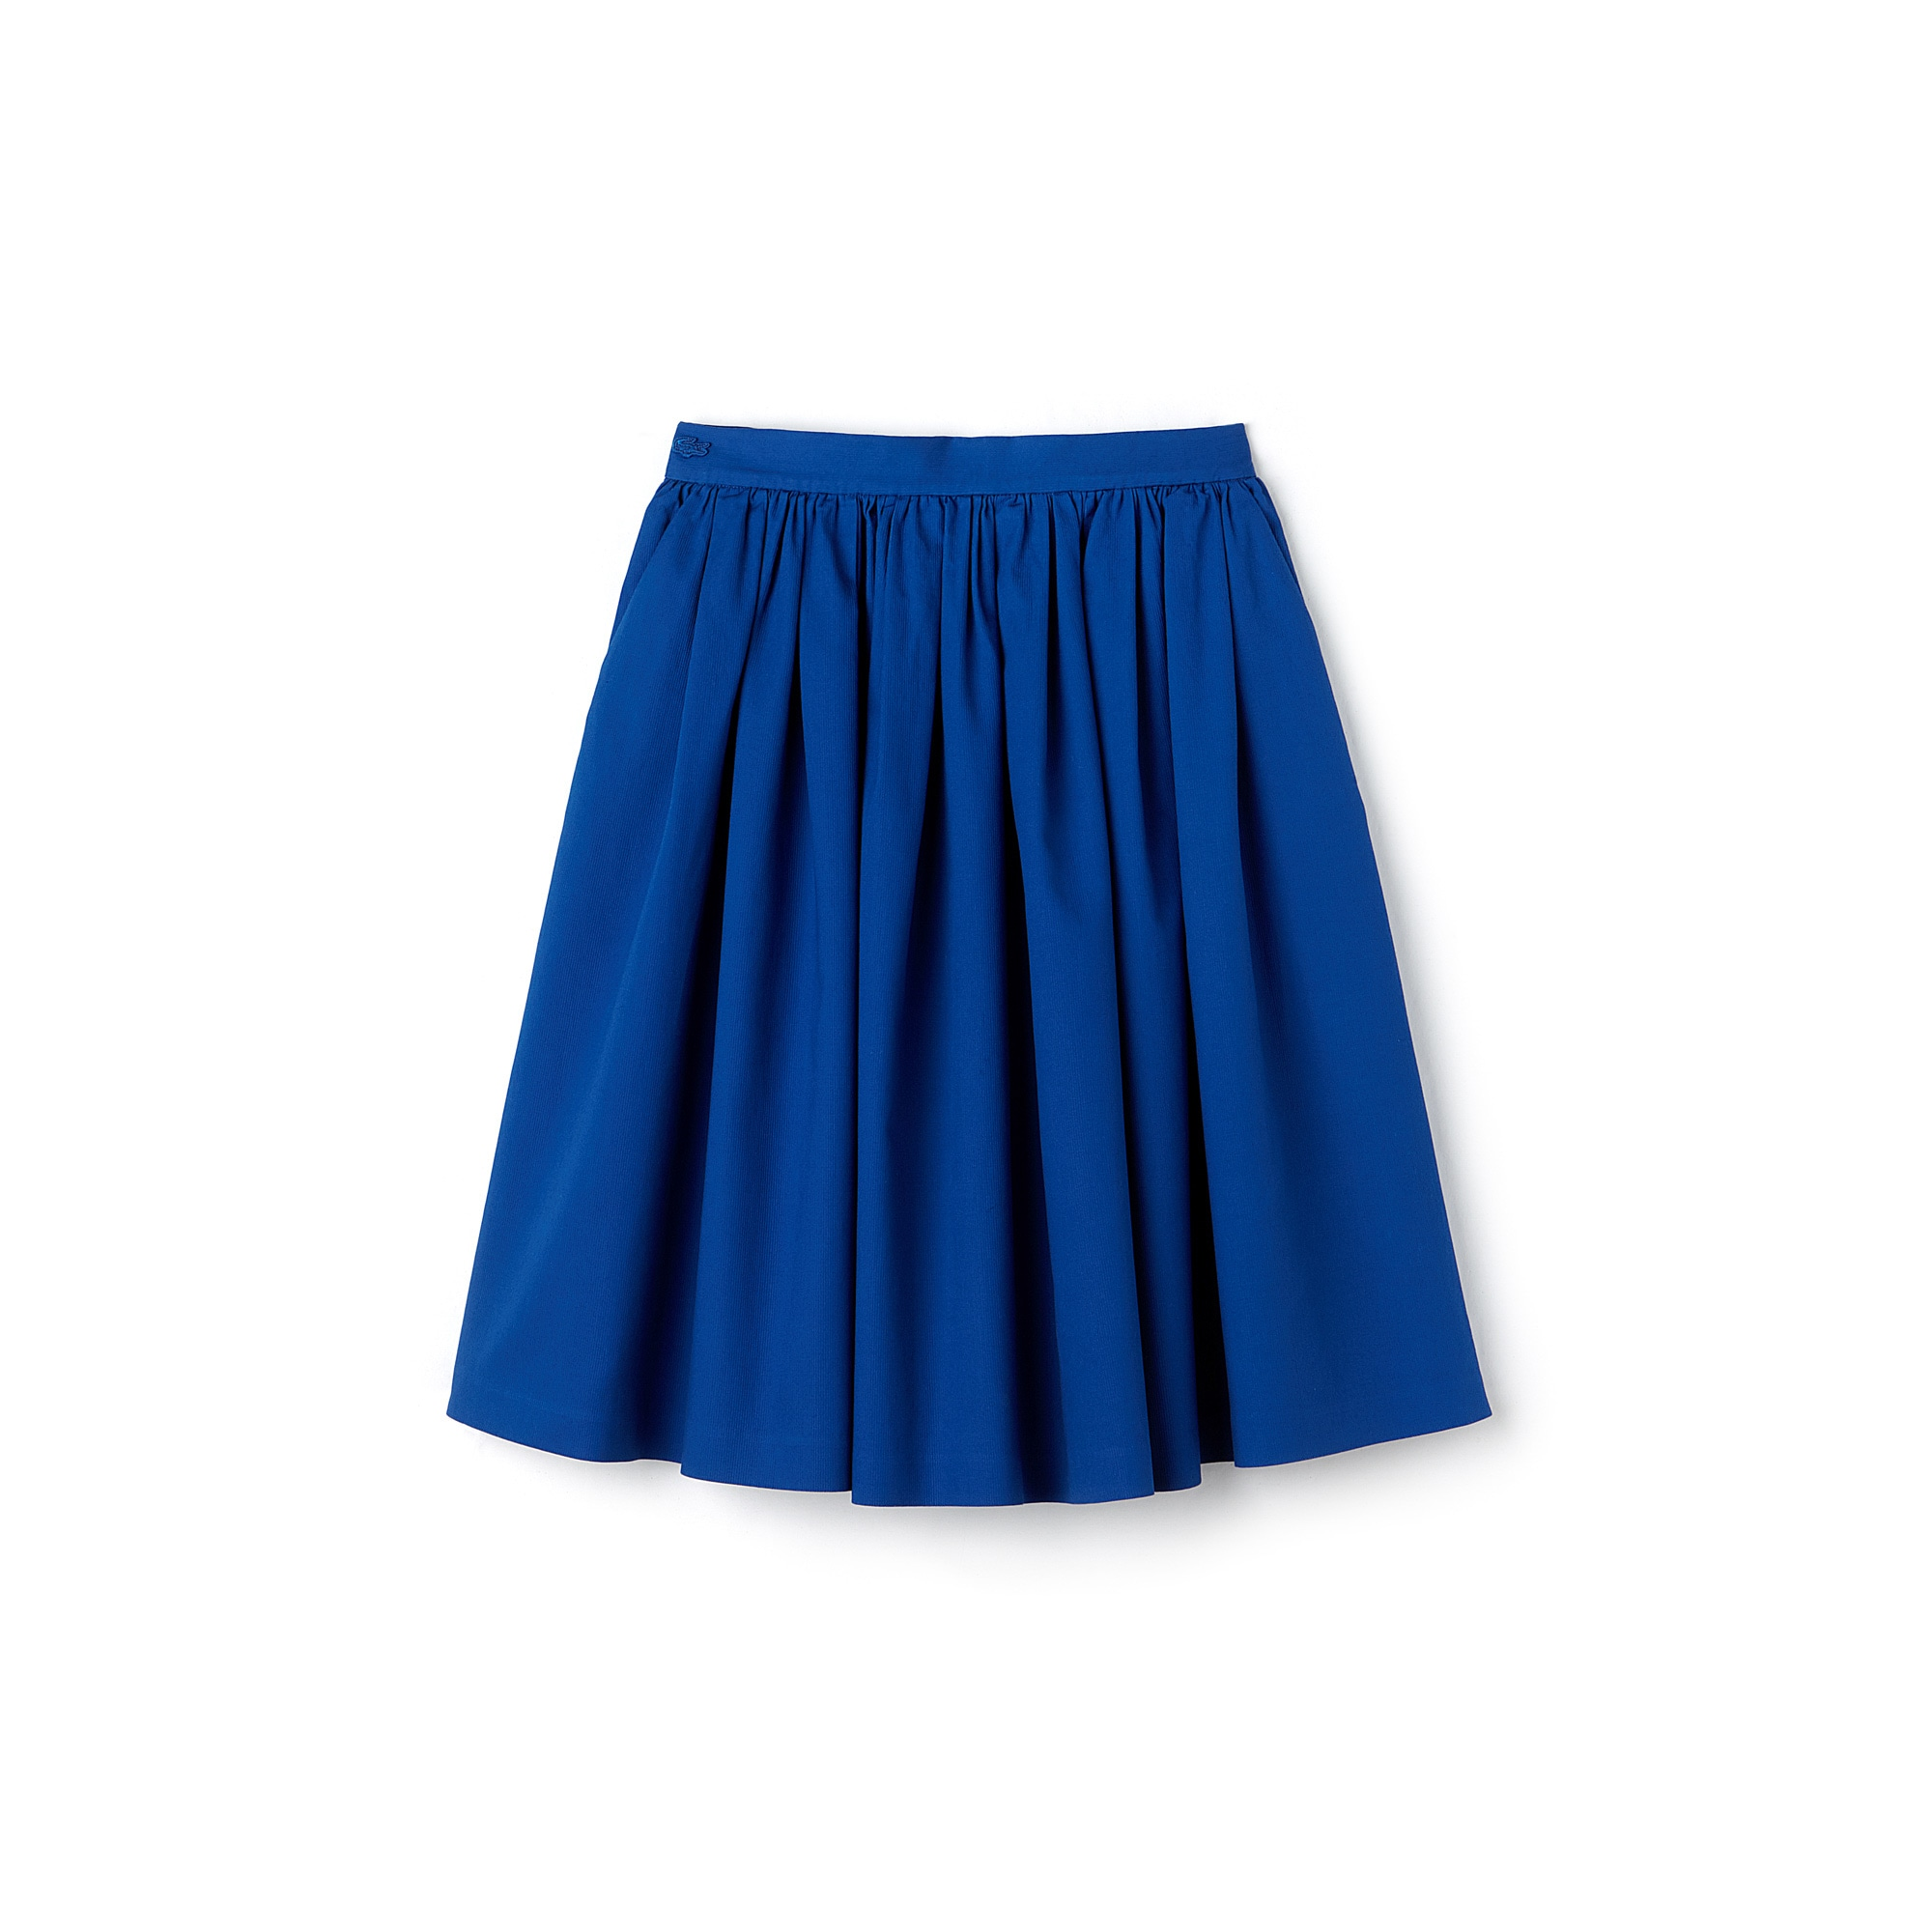 Women's Texturized Mid-Length Skirt